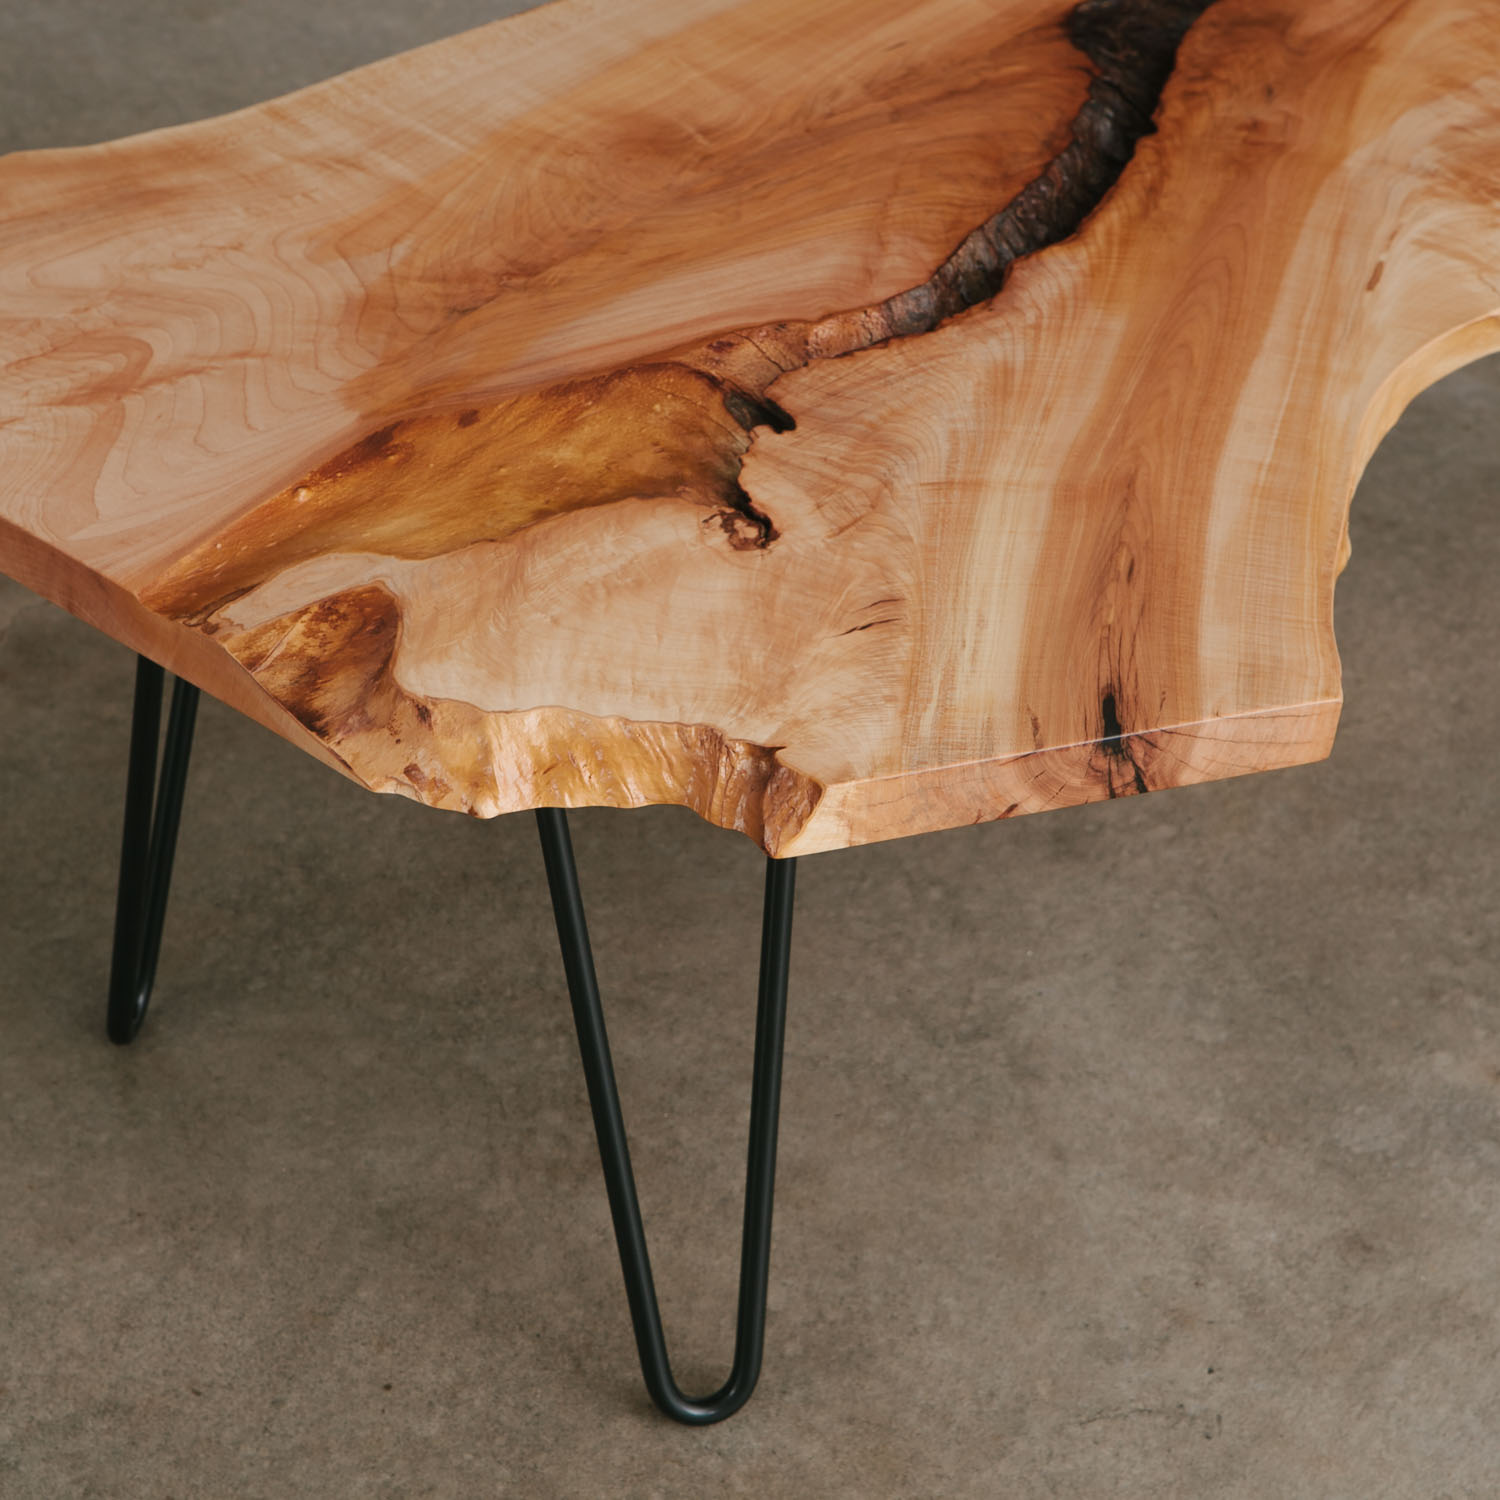 Hipster live edge coffee table hairpin legs